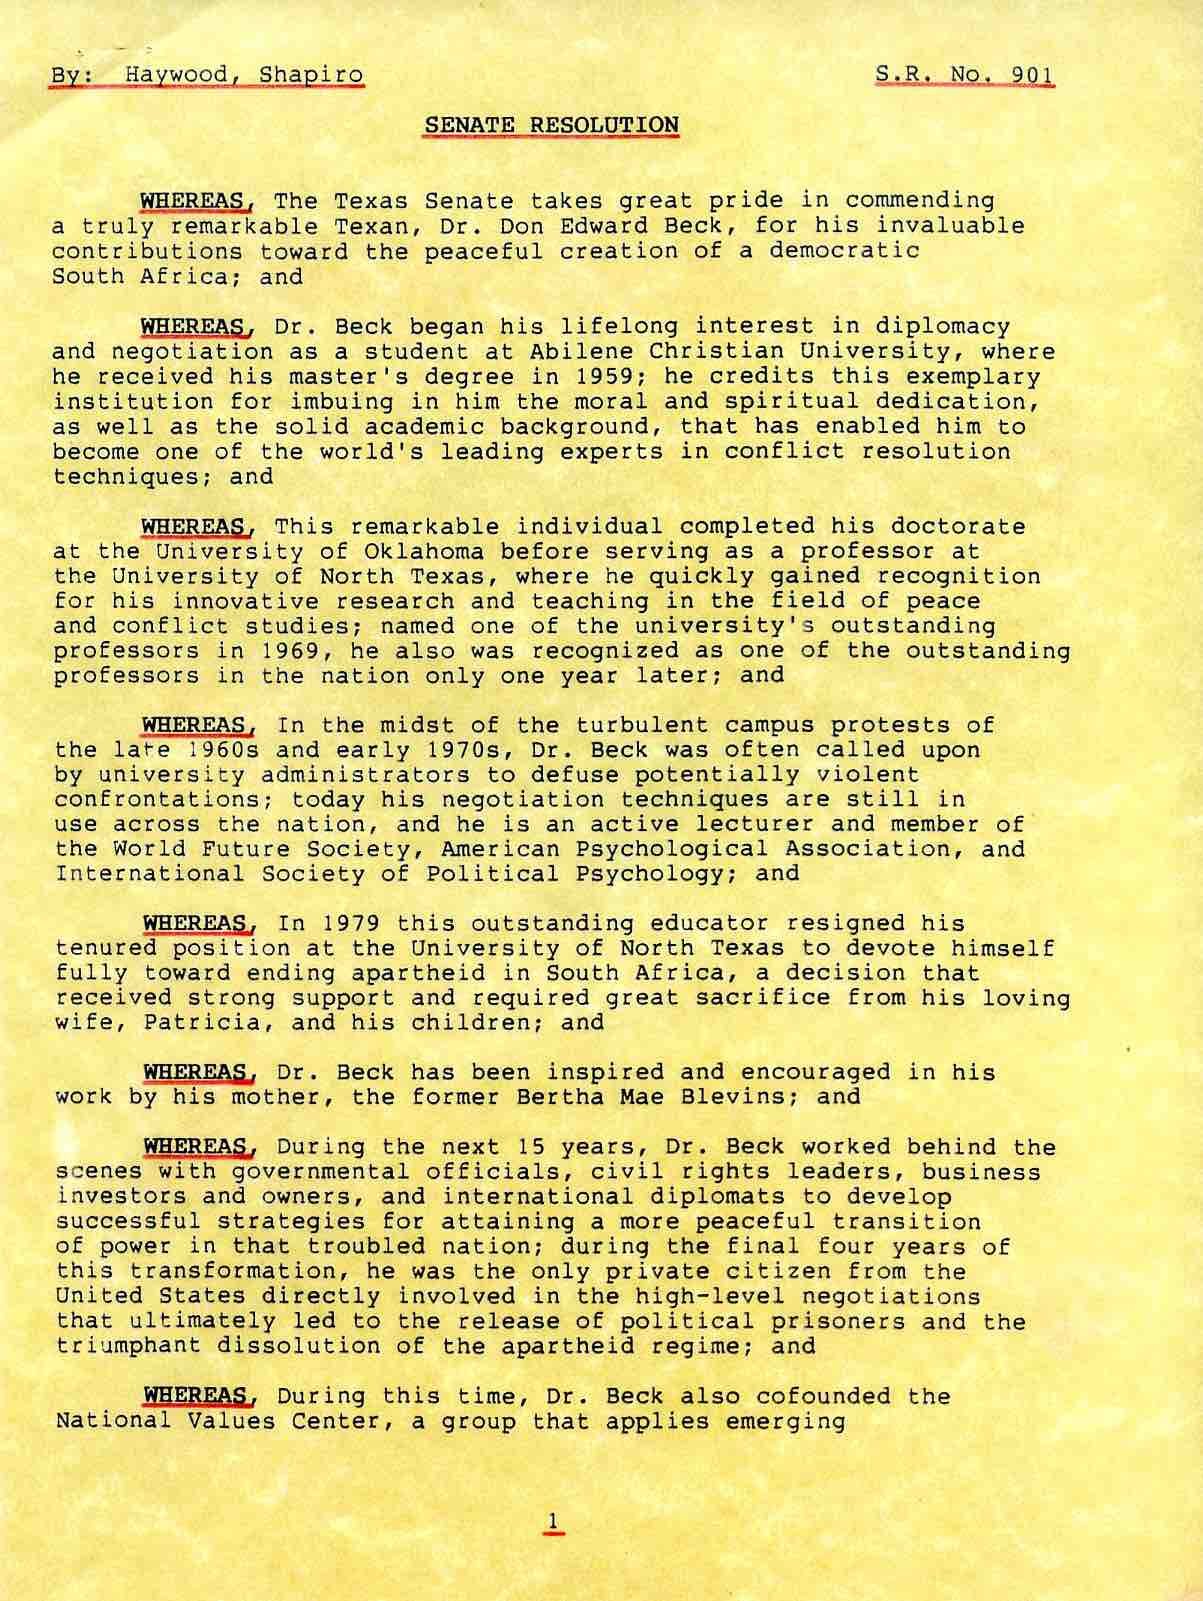 Texas Senate Resolution Page 1